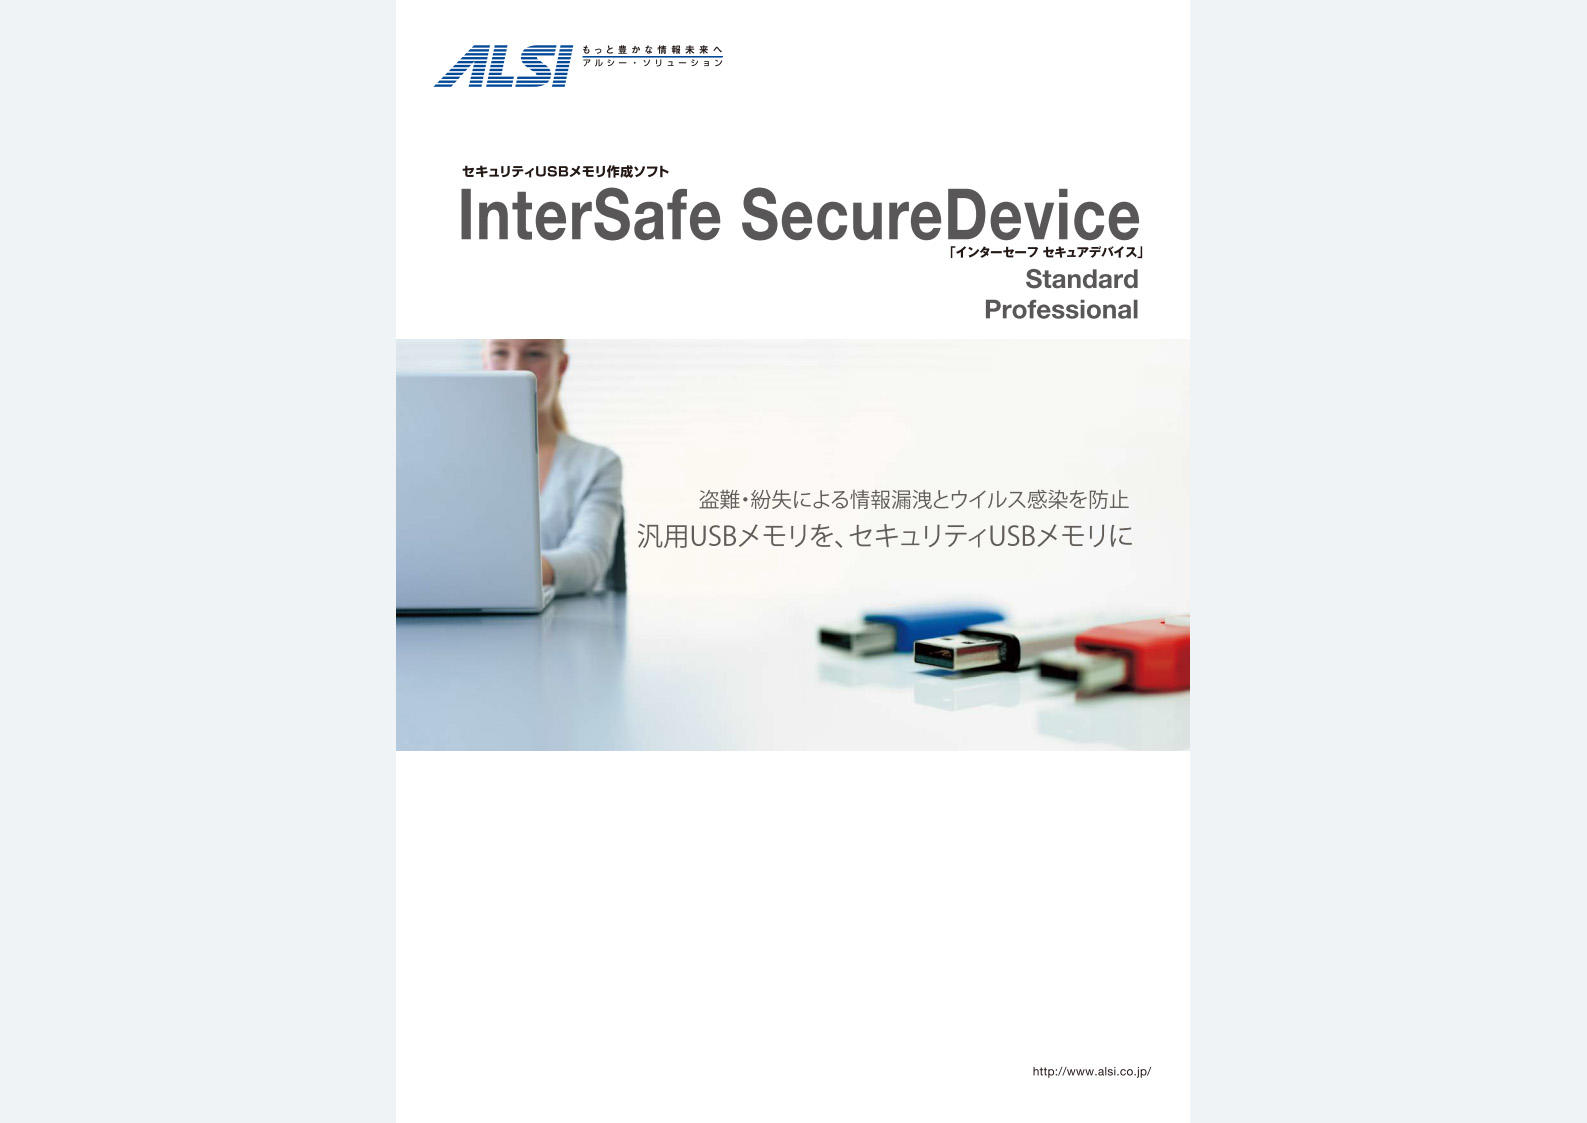 InterSafeSecureDevice Standard / Professional (A4サイズ印刷用)